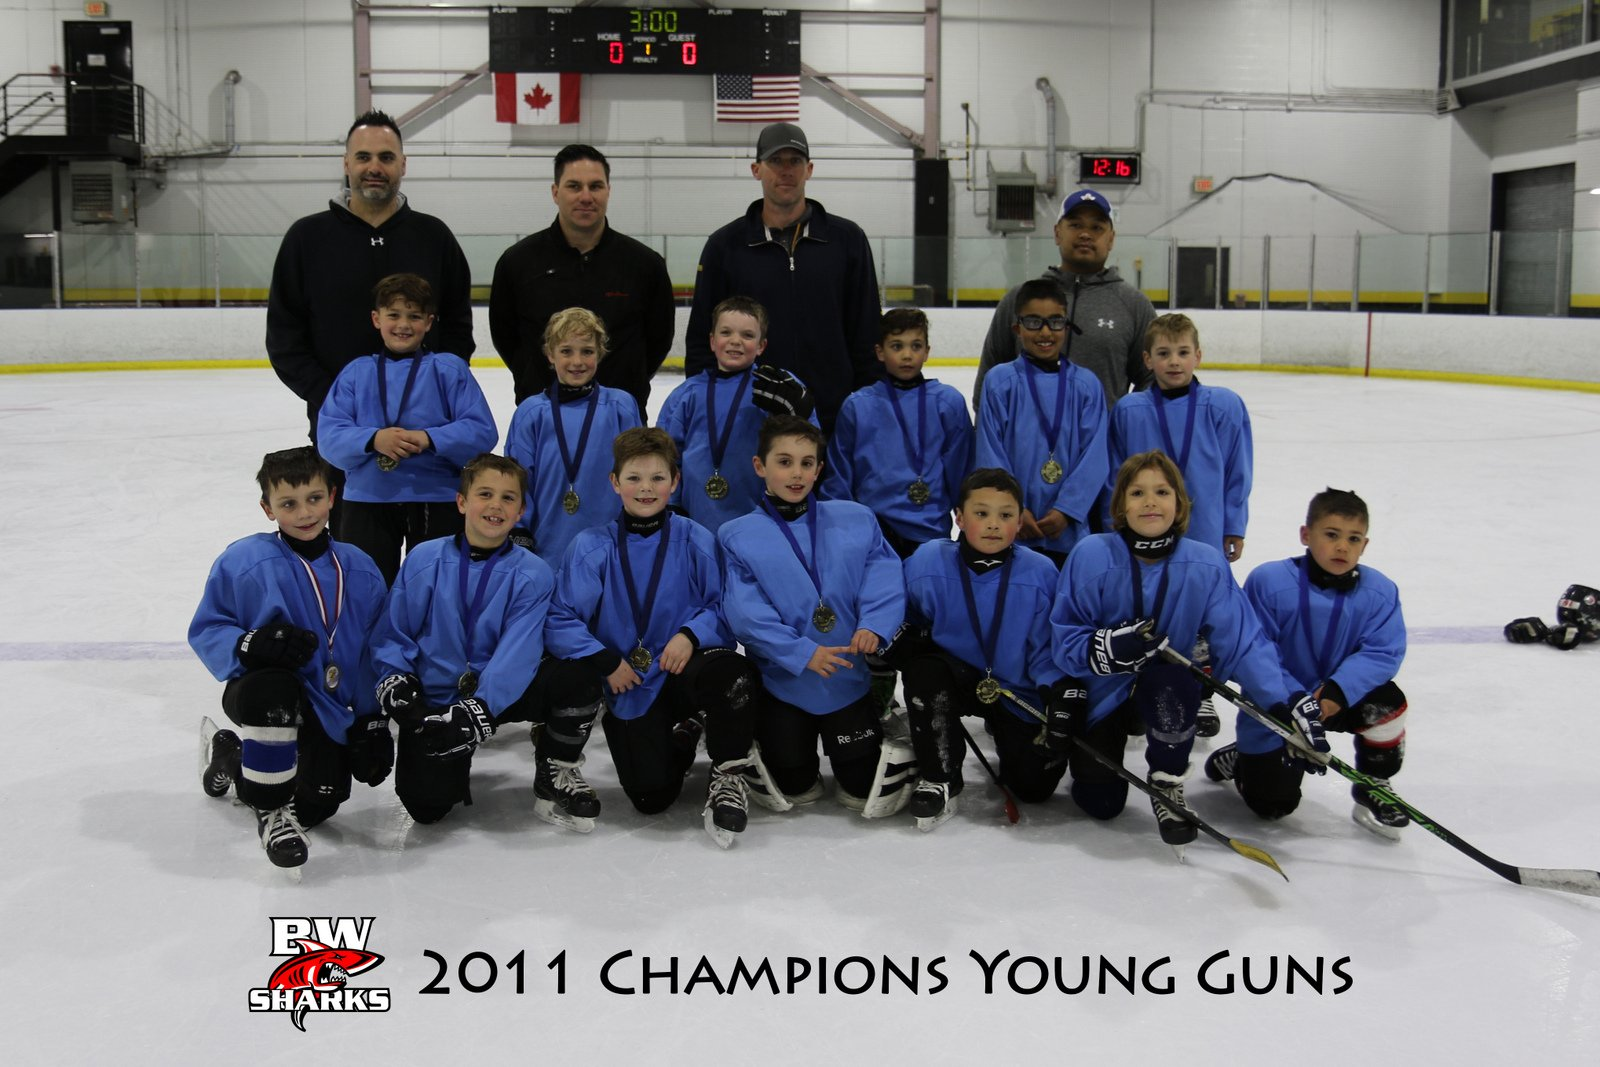 2011-Champions-Young-Guns-SilverPeak-Studios-Canada-Sarnia-Bluewater-Sharks-Tournament-001